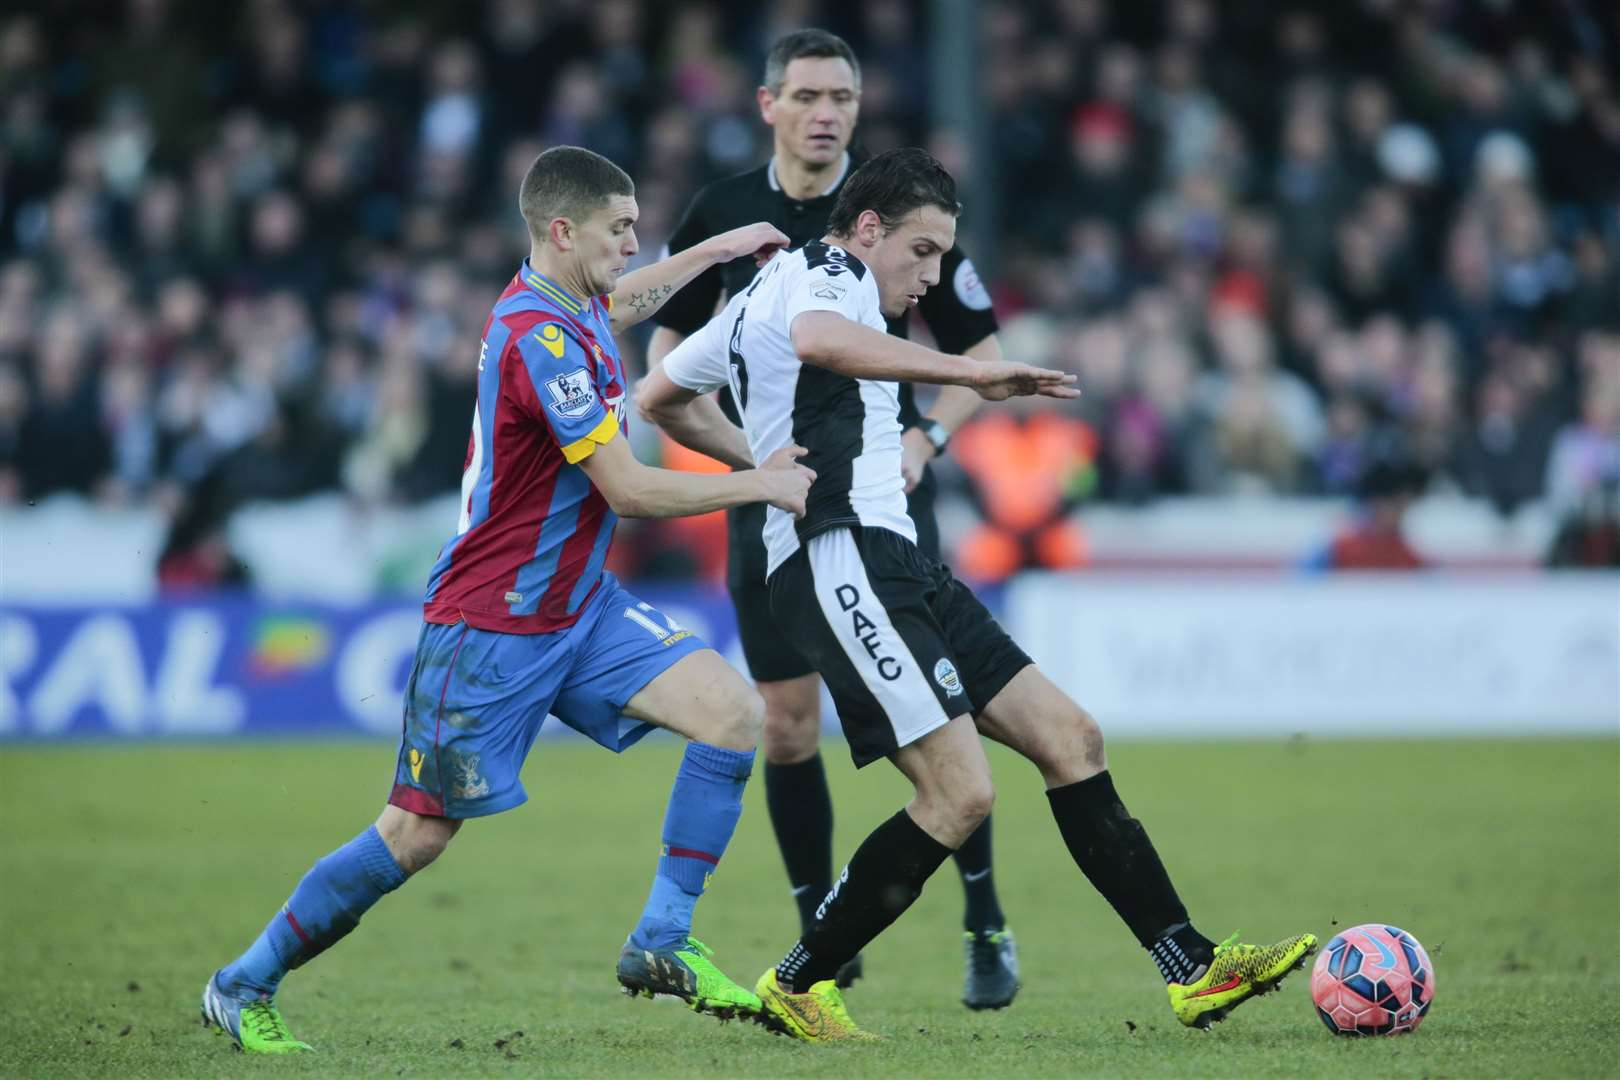 Stuart O'Keefe pressures Dover's Liam Bellamy while playing for Crystal Palace in the FA Cup Picture: Martin Apps